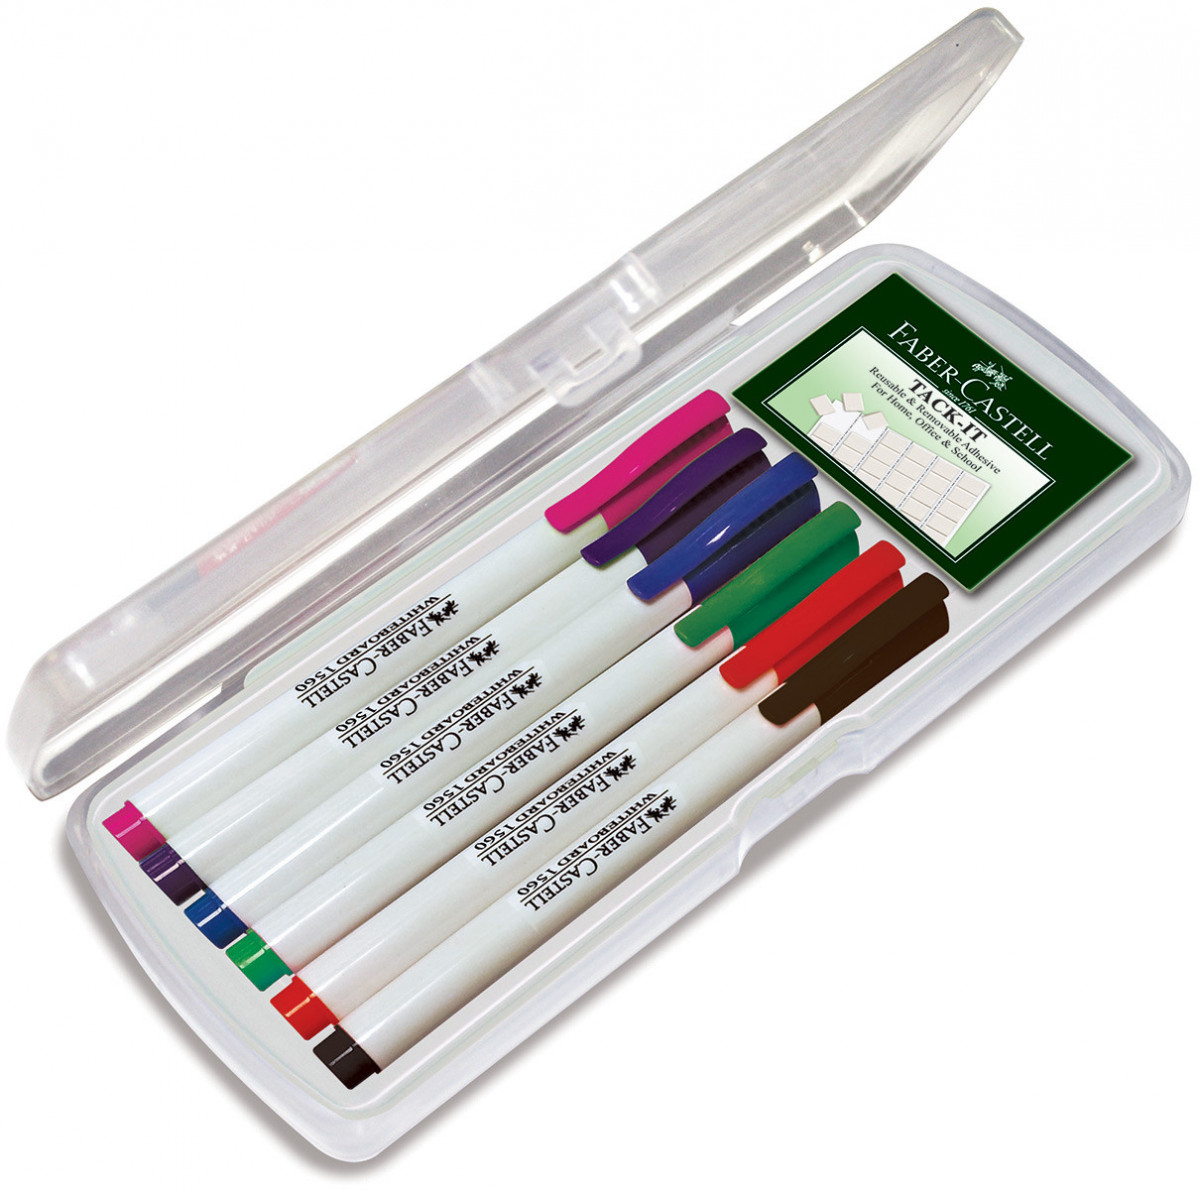 Faber-Castell 1560 Slim Whiteboard Marker - Assorted Office Colours (Pack of 6)